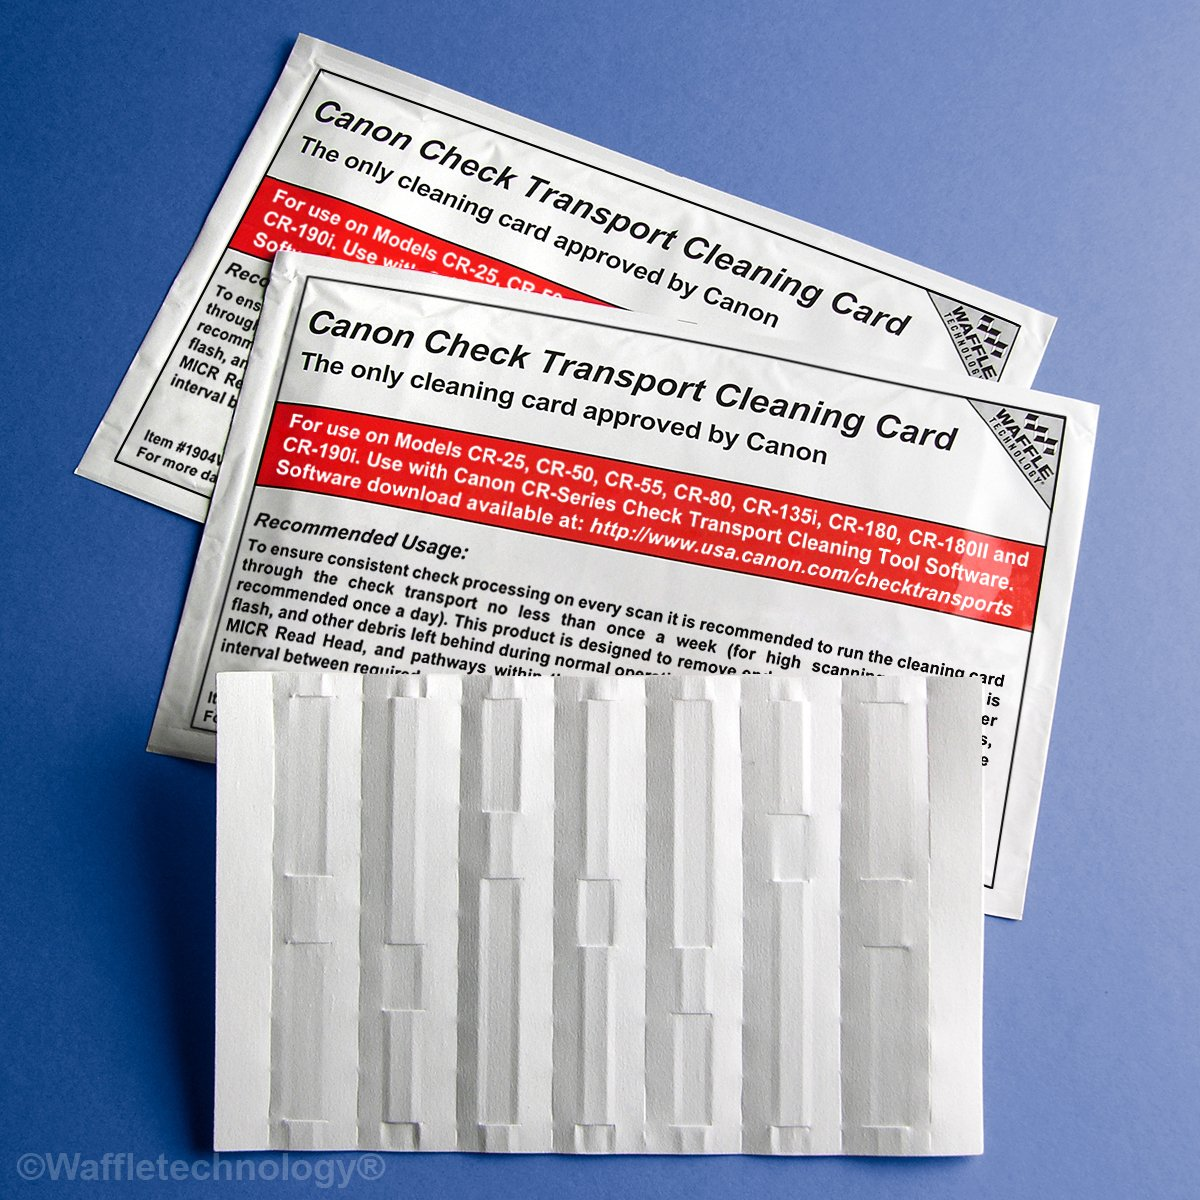 Cleaning Cards for Canon CR-Series Check Scanners (30)